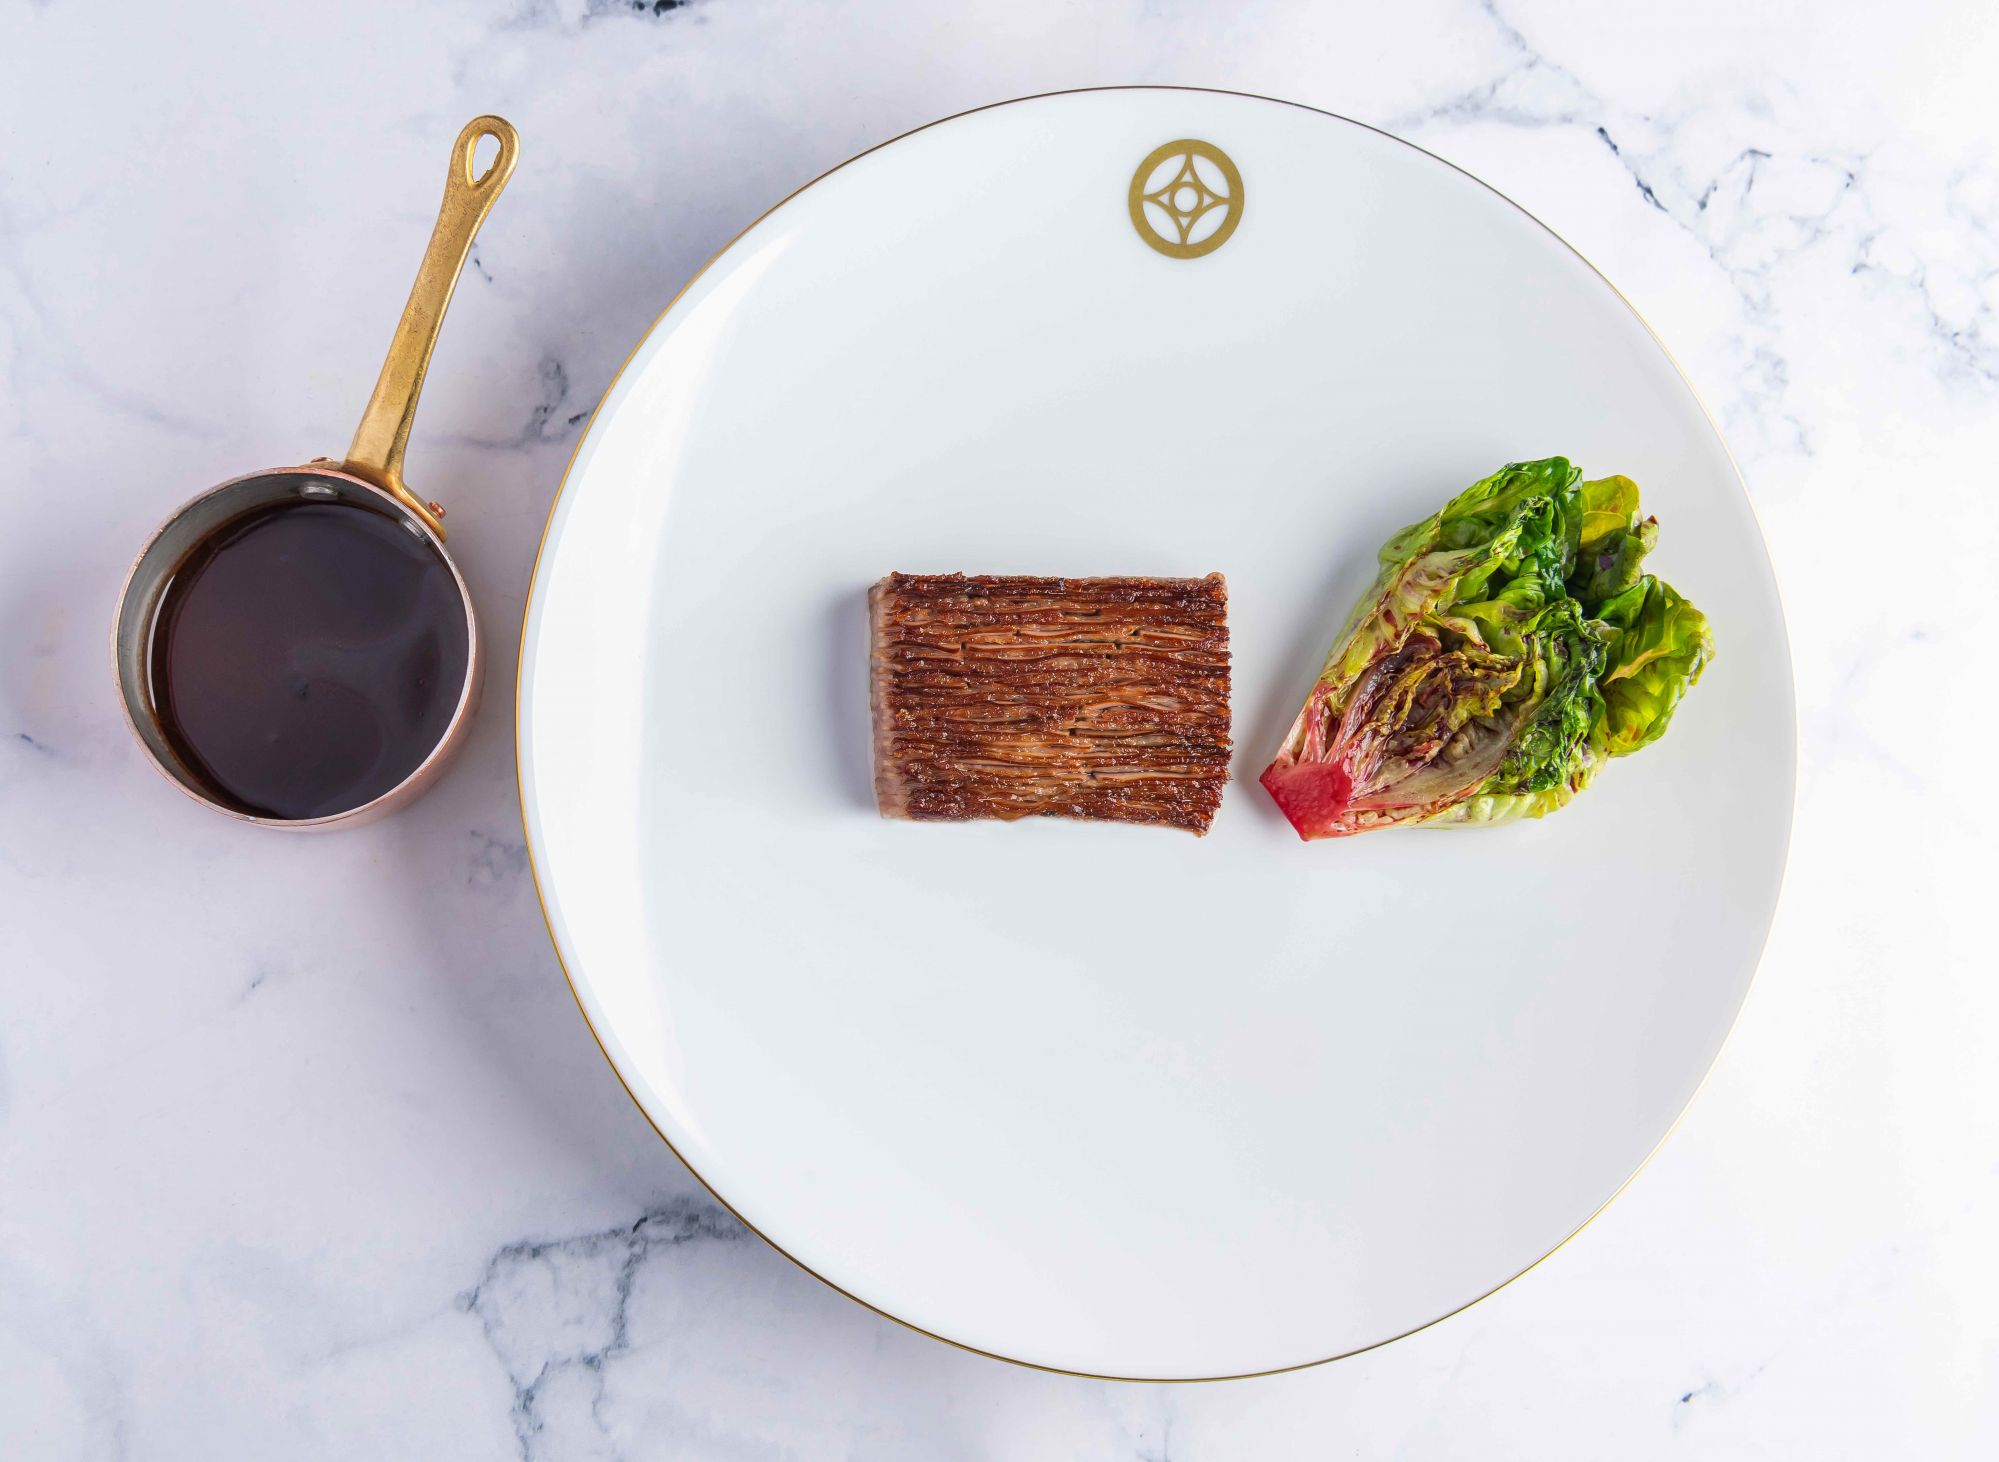 Gunma Wagyu grade 5 served like a millefeuille, capers jus